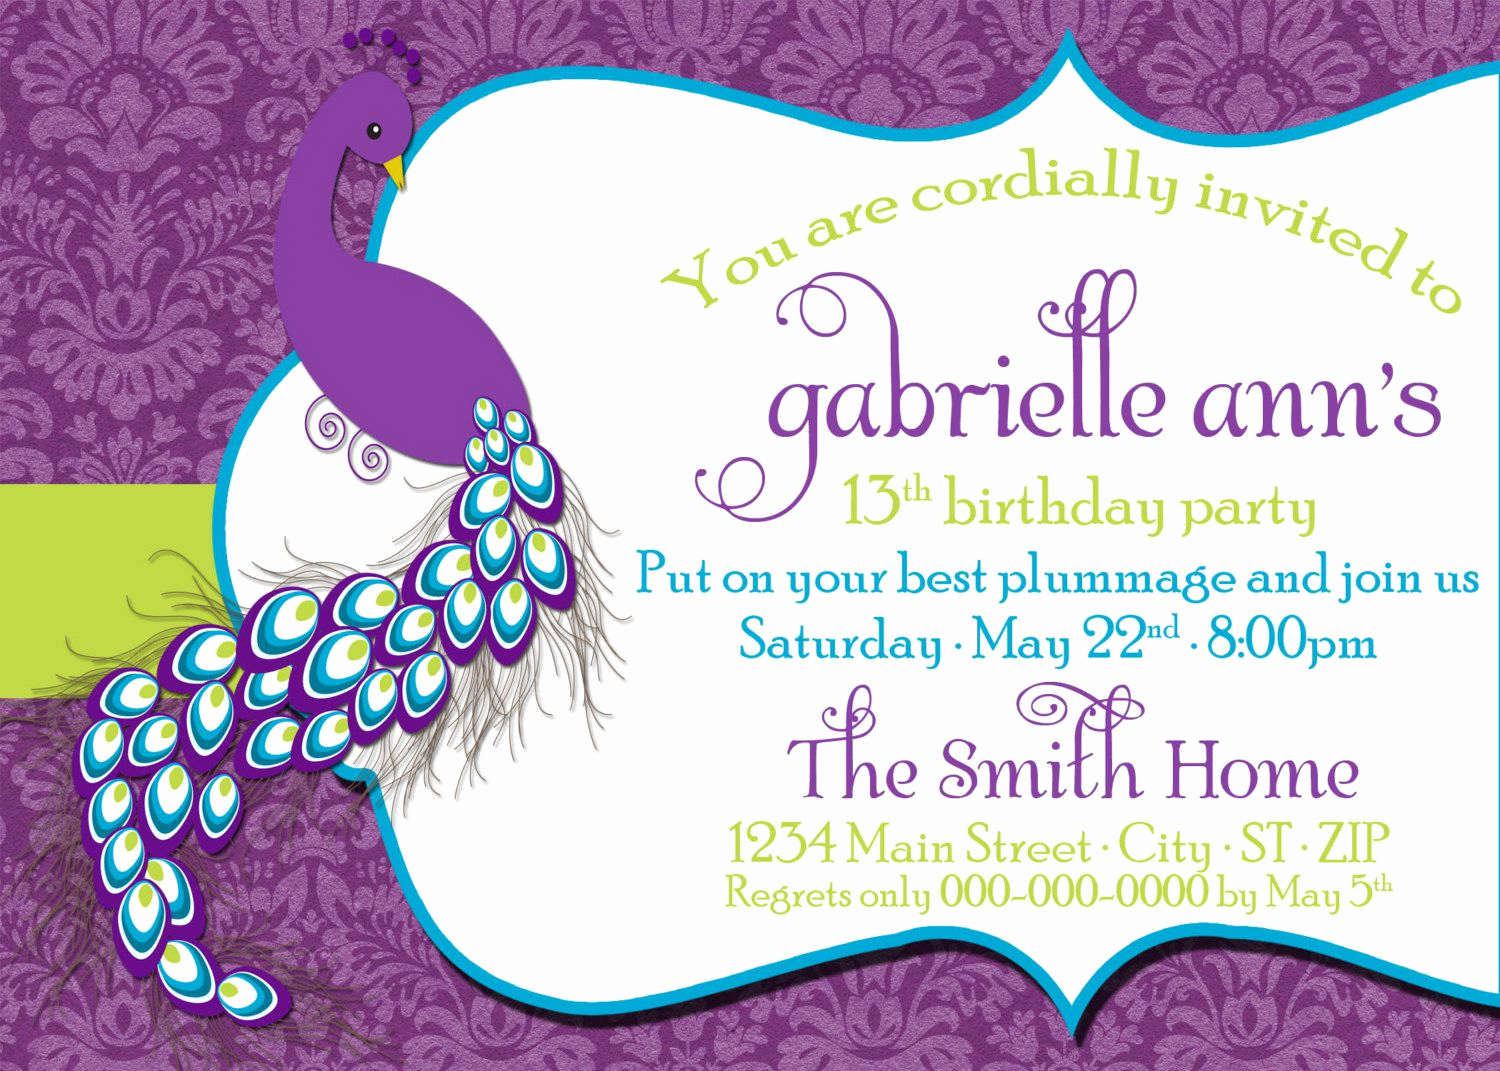 Invitation Dress Code Wording Elegant Birthday Invitations Tween Birthday Party Invitations